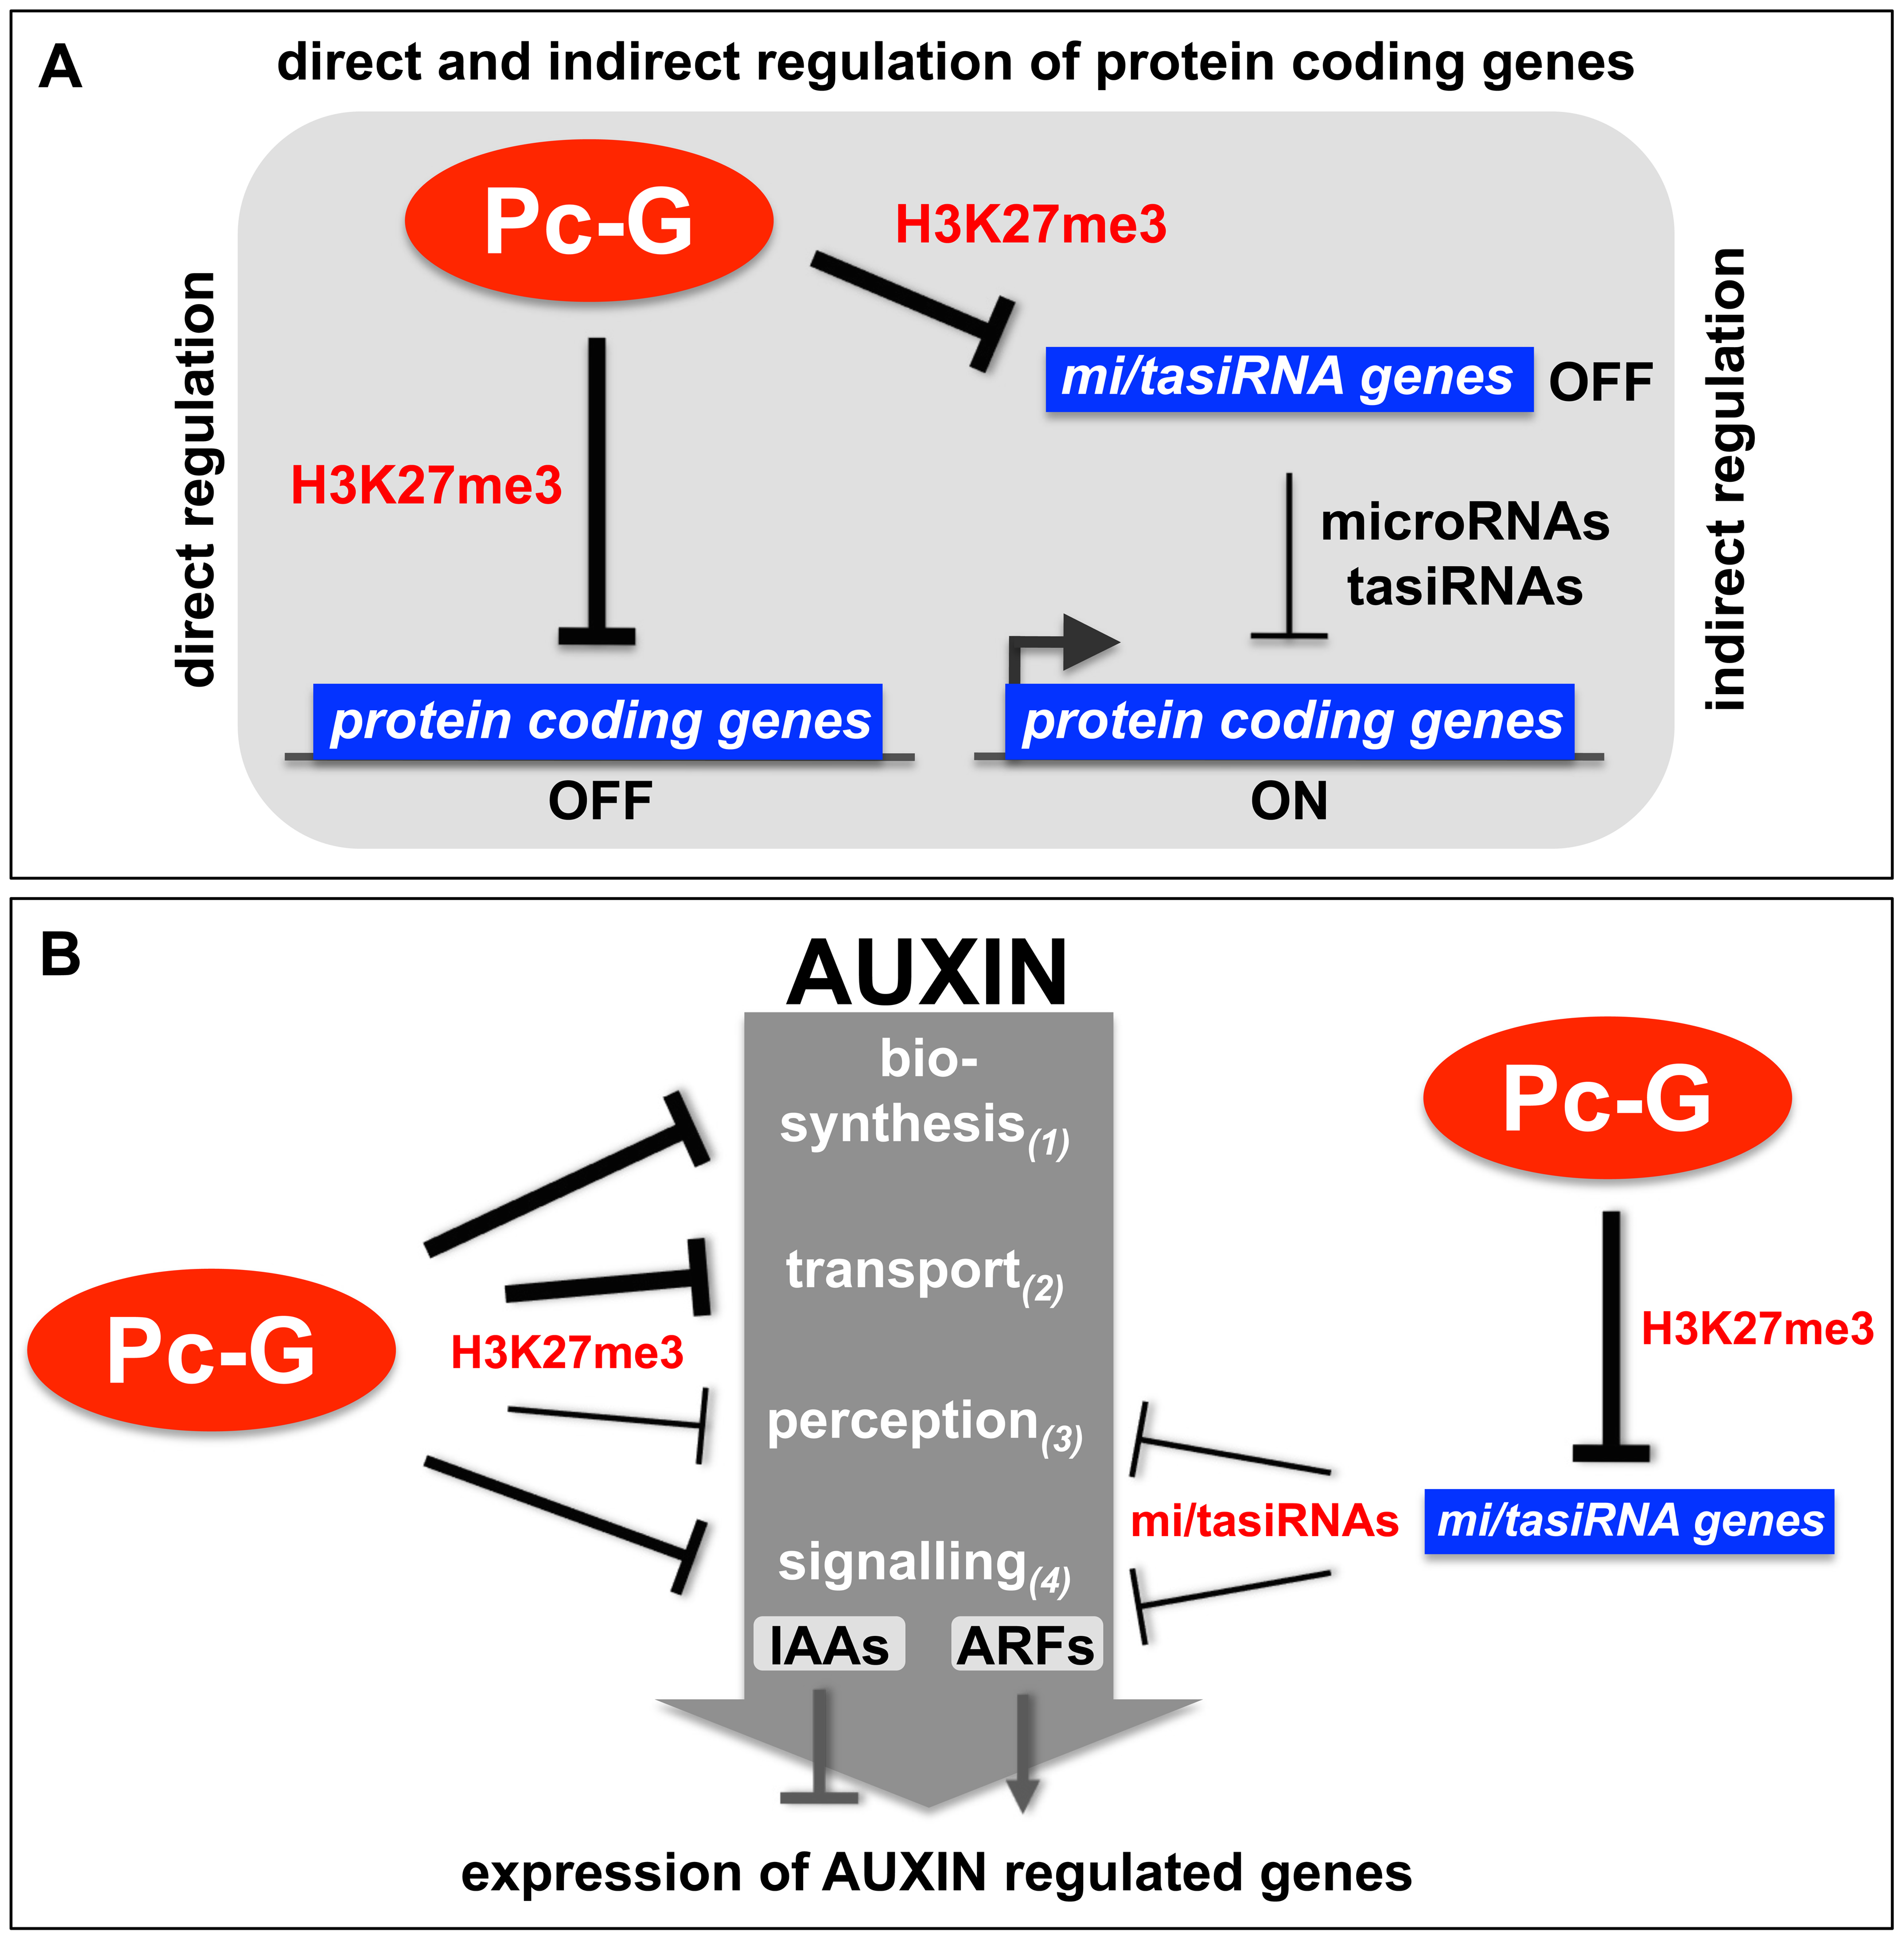 Models of the H3K27me3-mediated regulation of protein coding genes and auxin signaling.